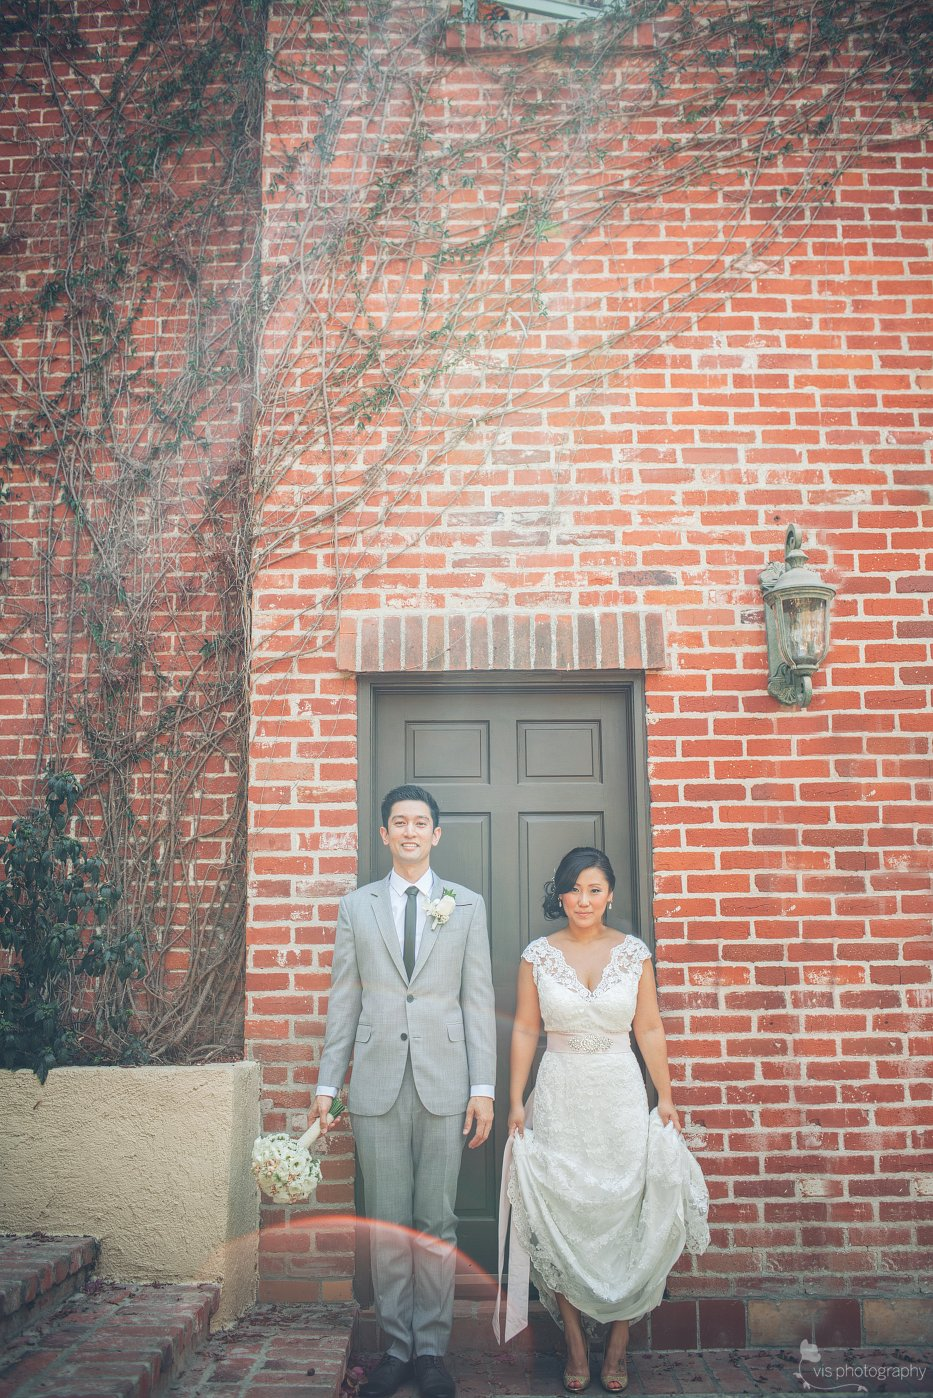 California-wedding-photography-bride-and-groom-portrait.full